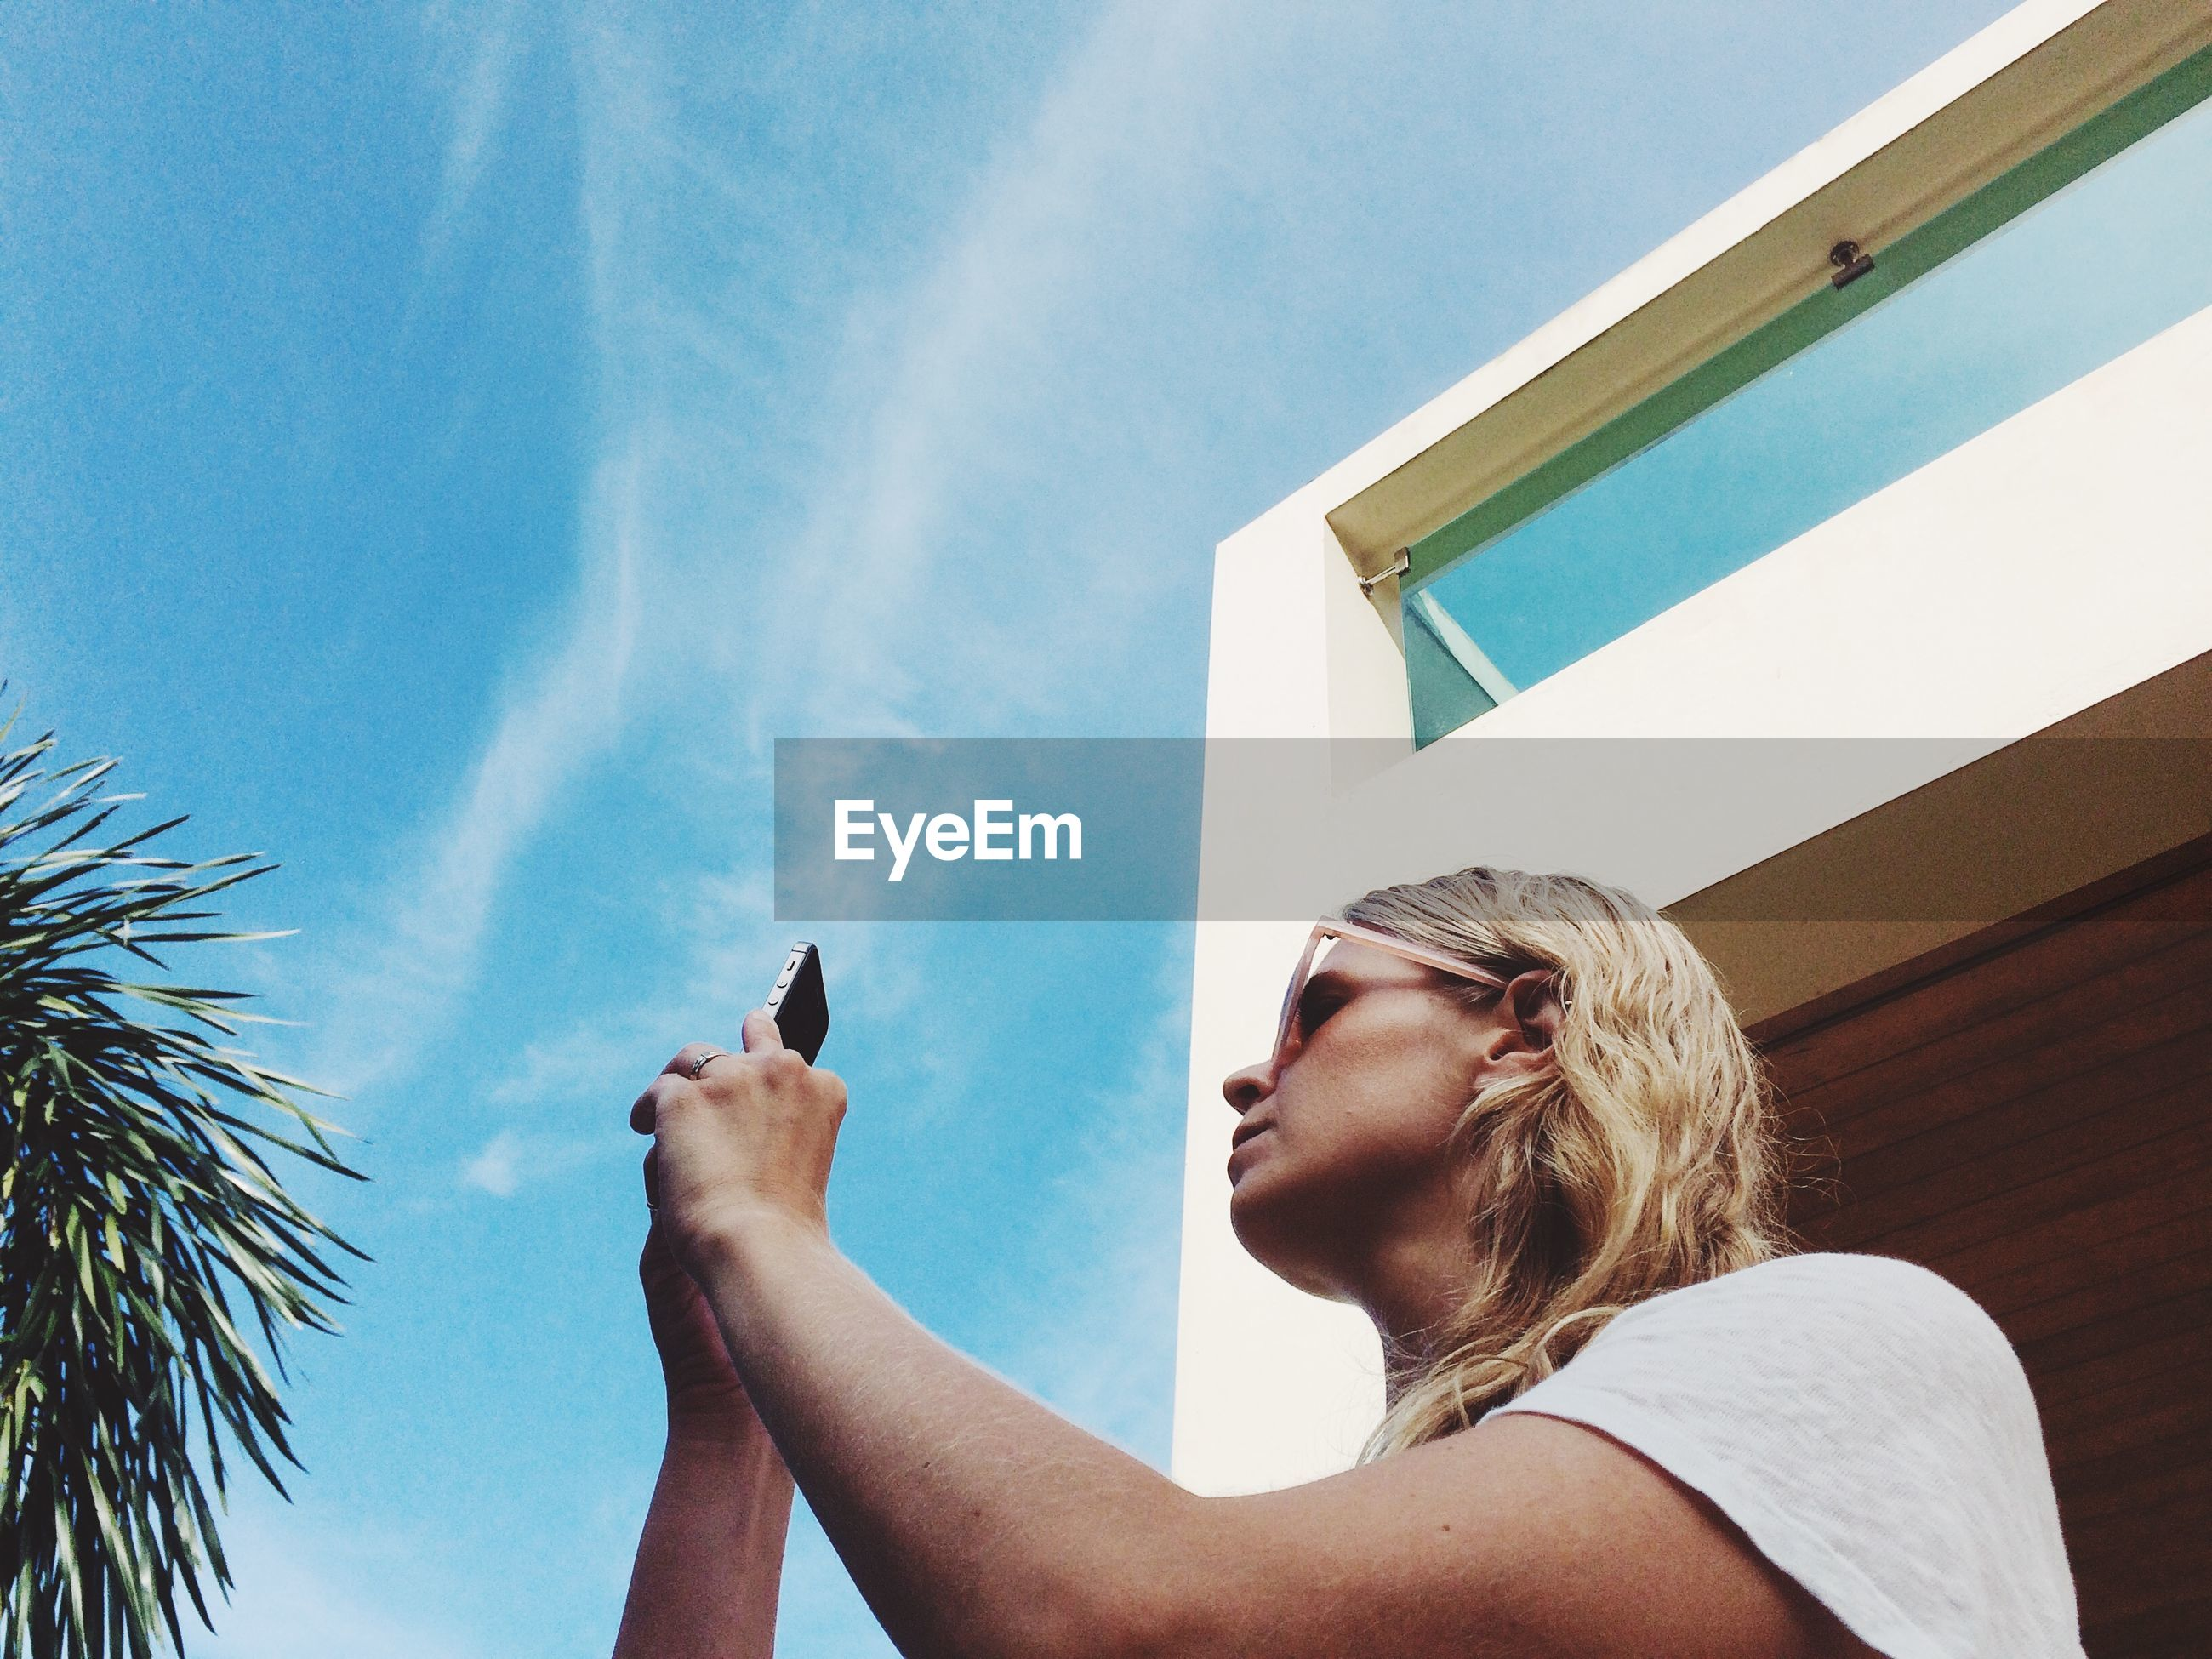 Low angle view of woman using mobile phone against sky